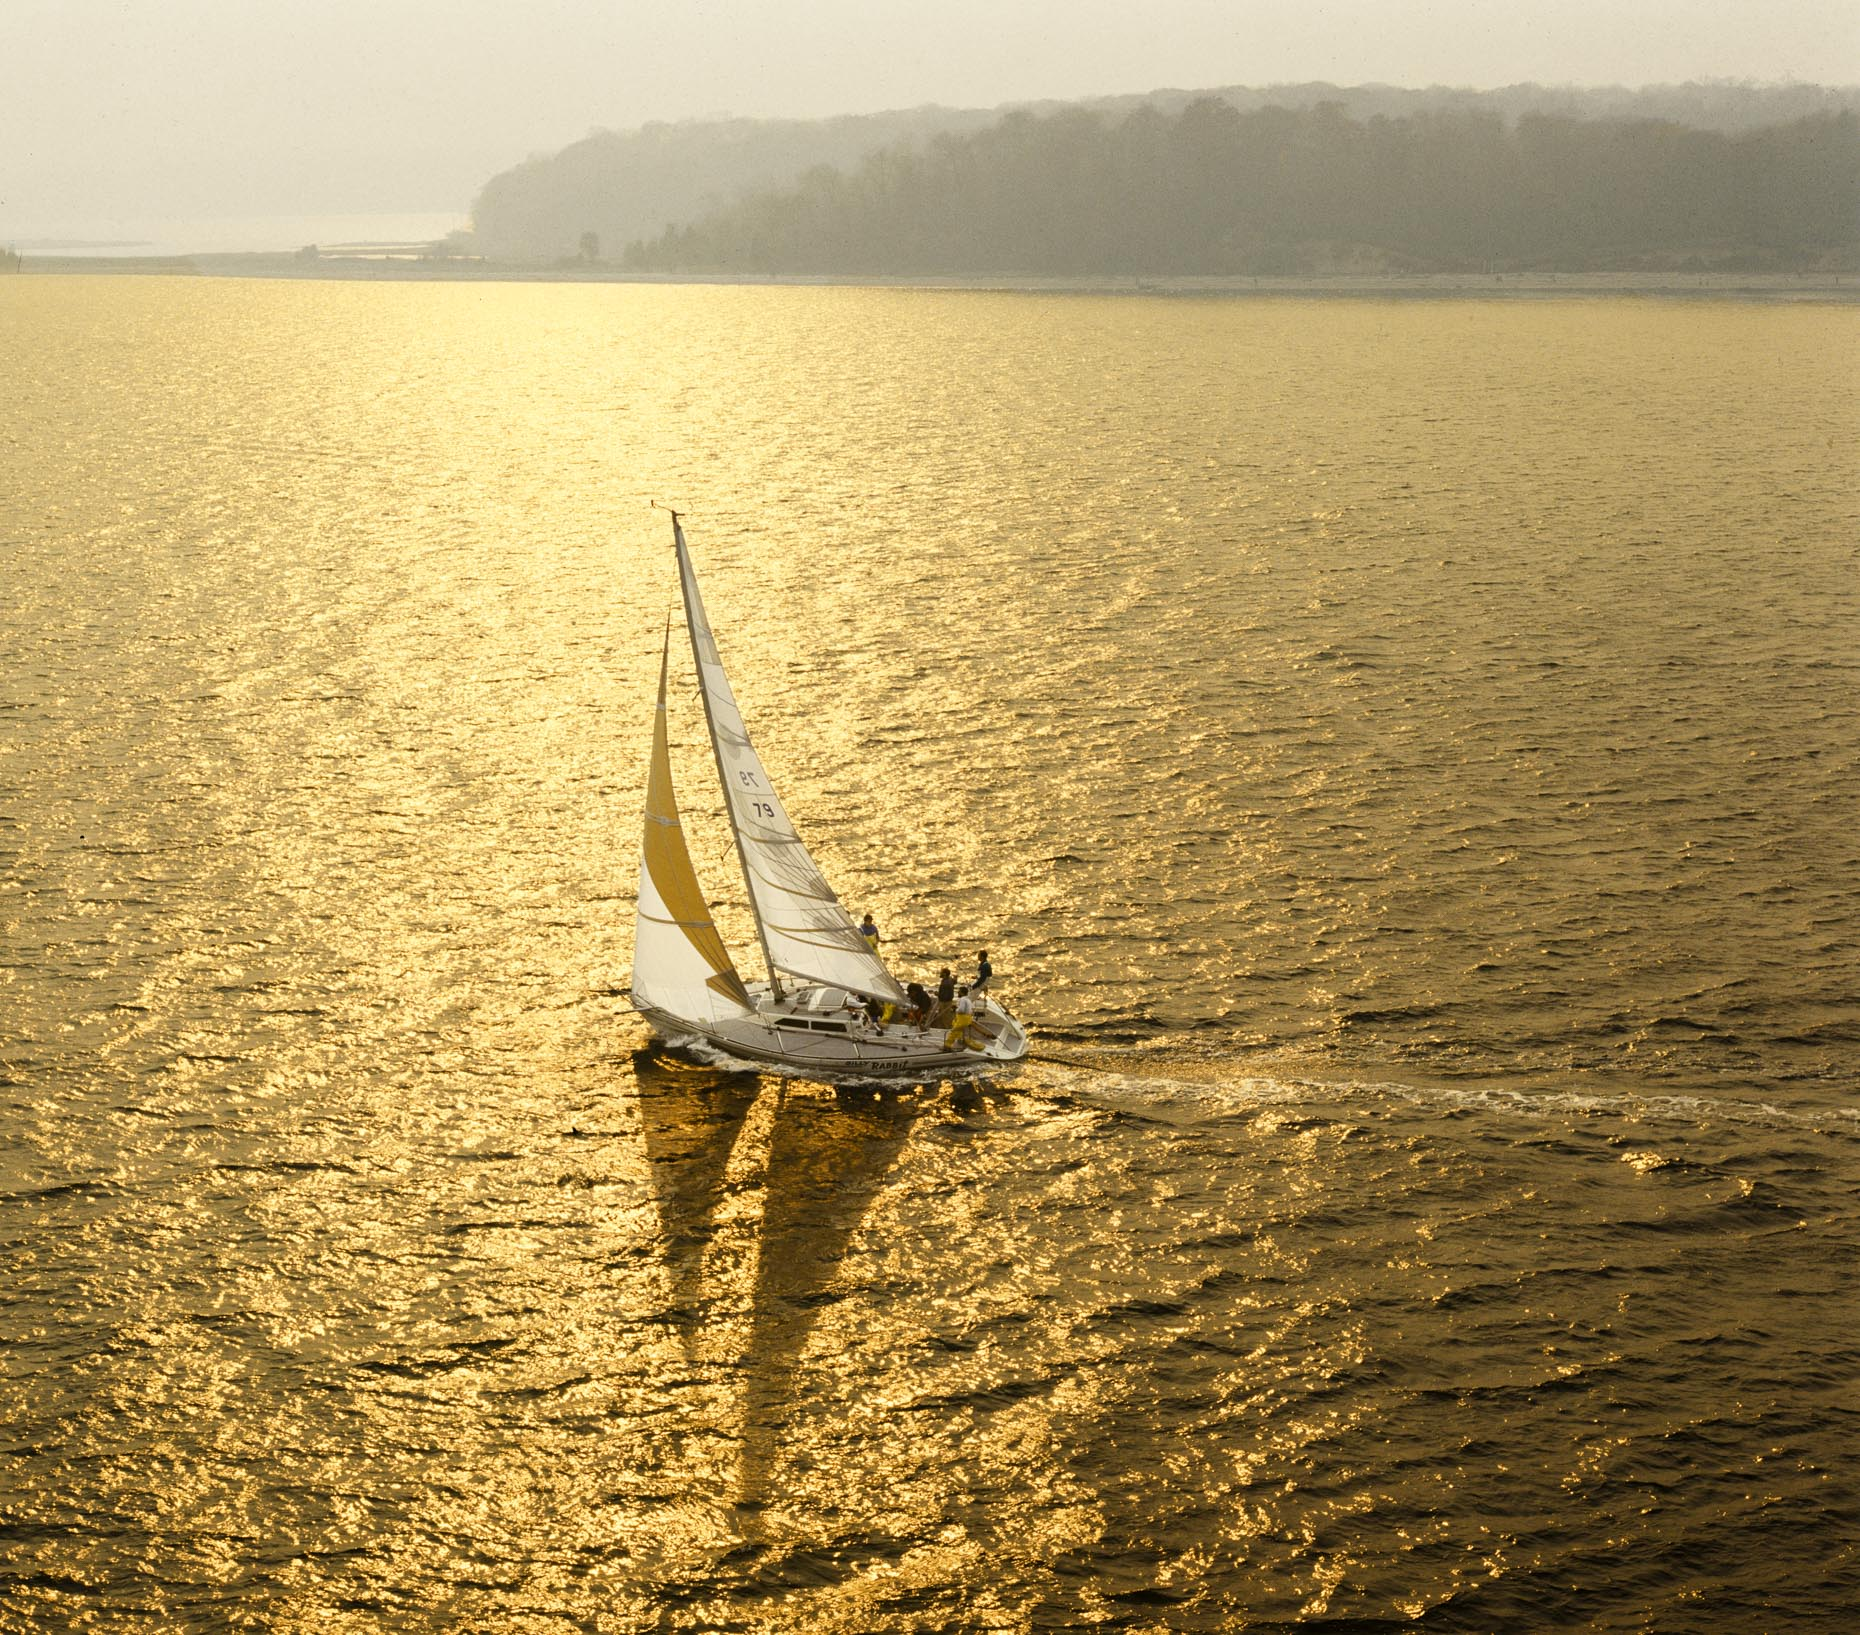 Yachting Photography by Stefen Turner